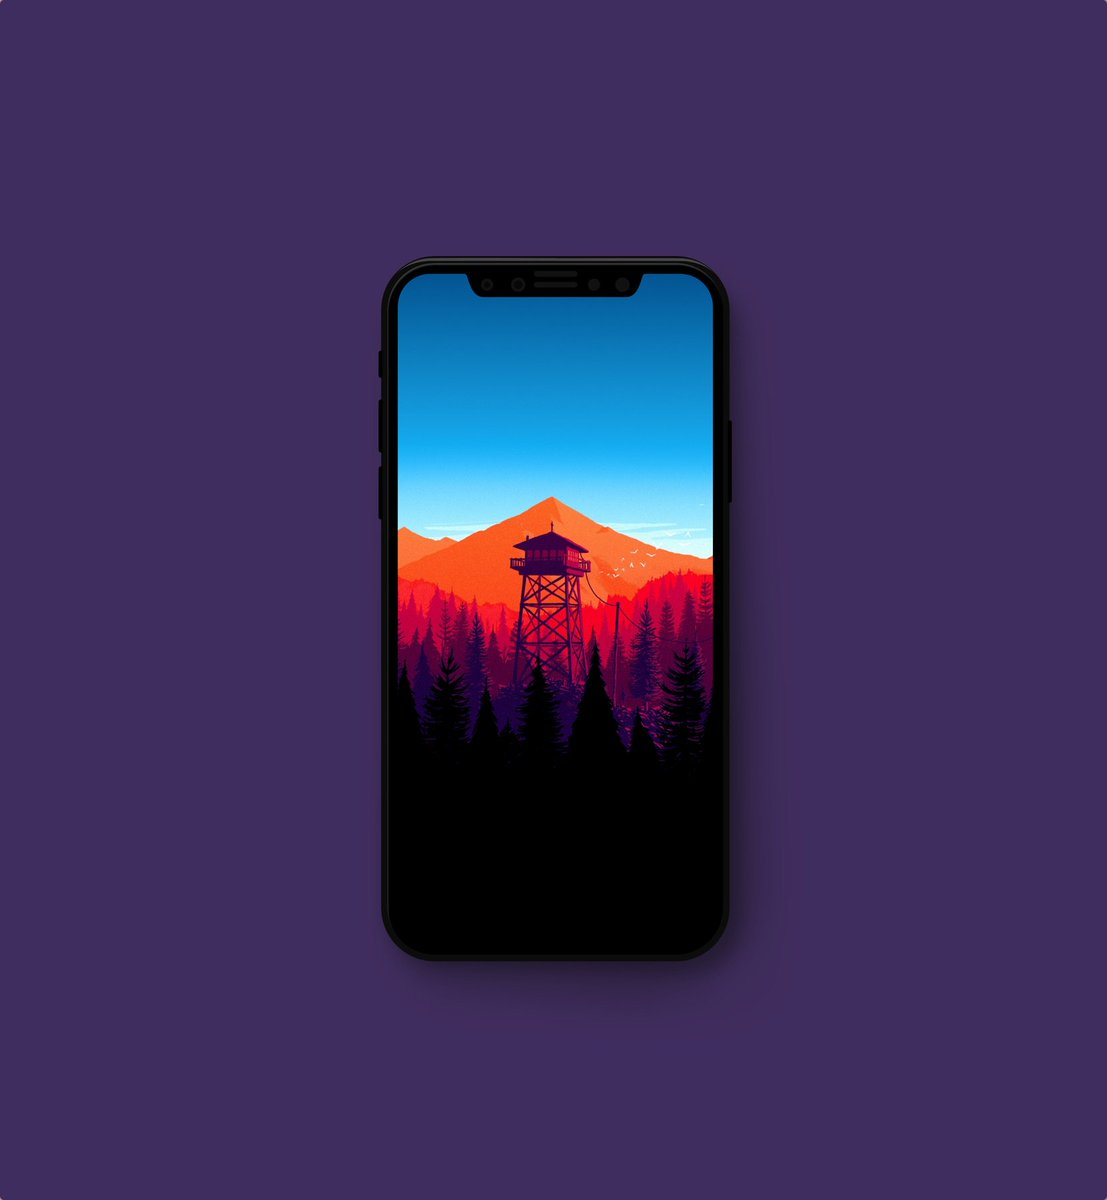 Firewatch Wallpaper posted by Michelle Simpson